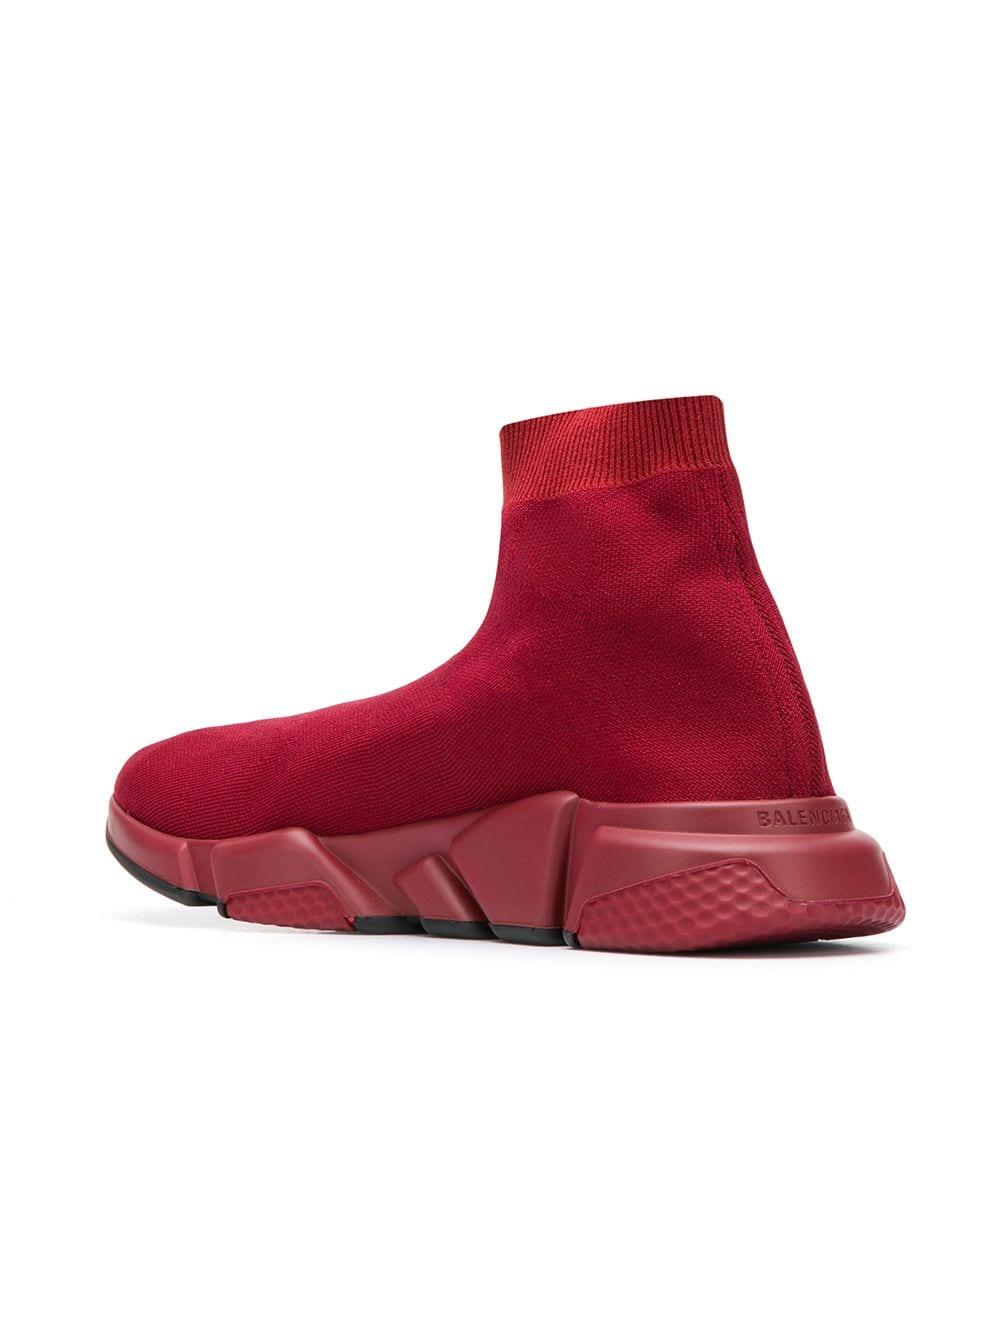 0a68a271e05c Balenciaga - Red Exclusive To Farfetch - Speed Sock Sneakers for Men -  Lyst. View fullscreen